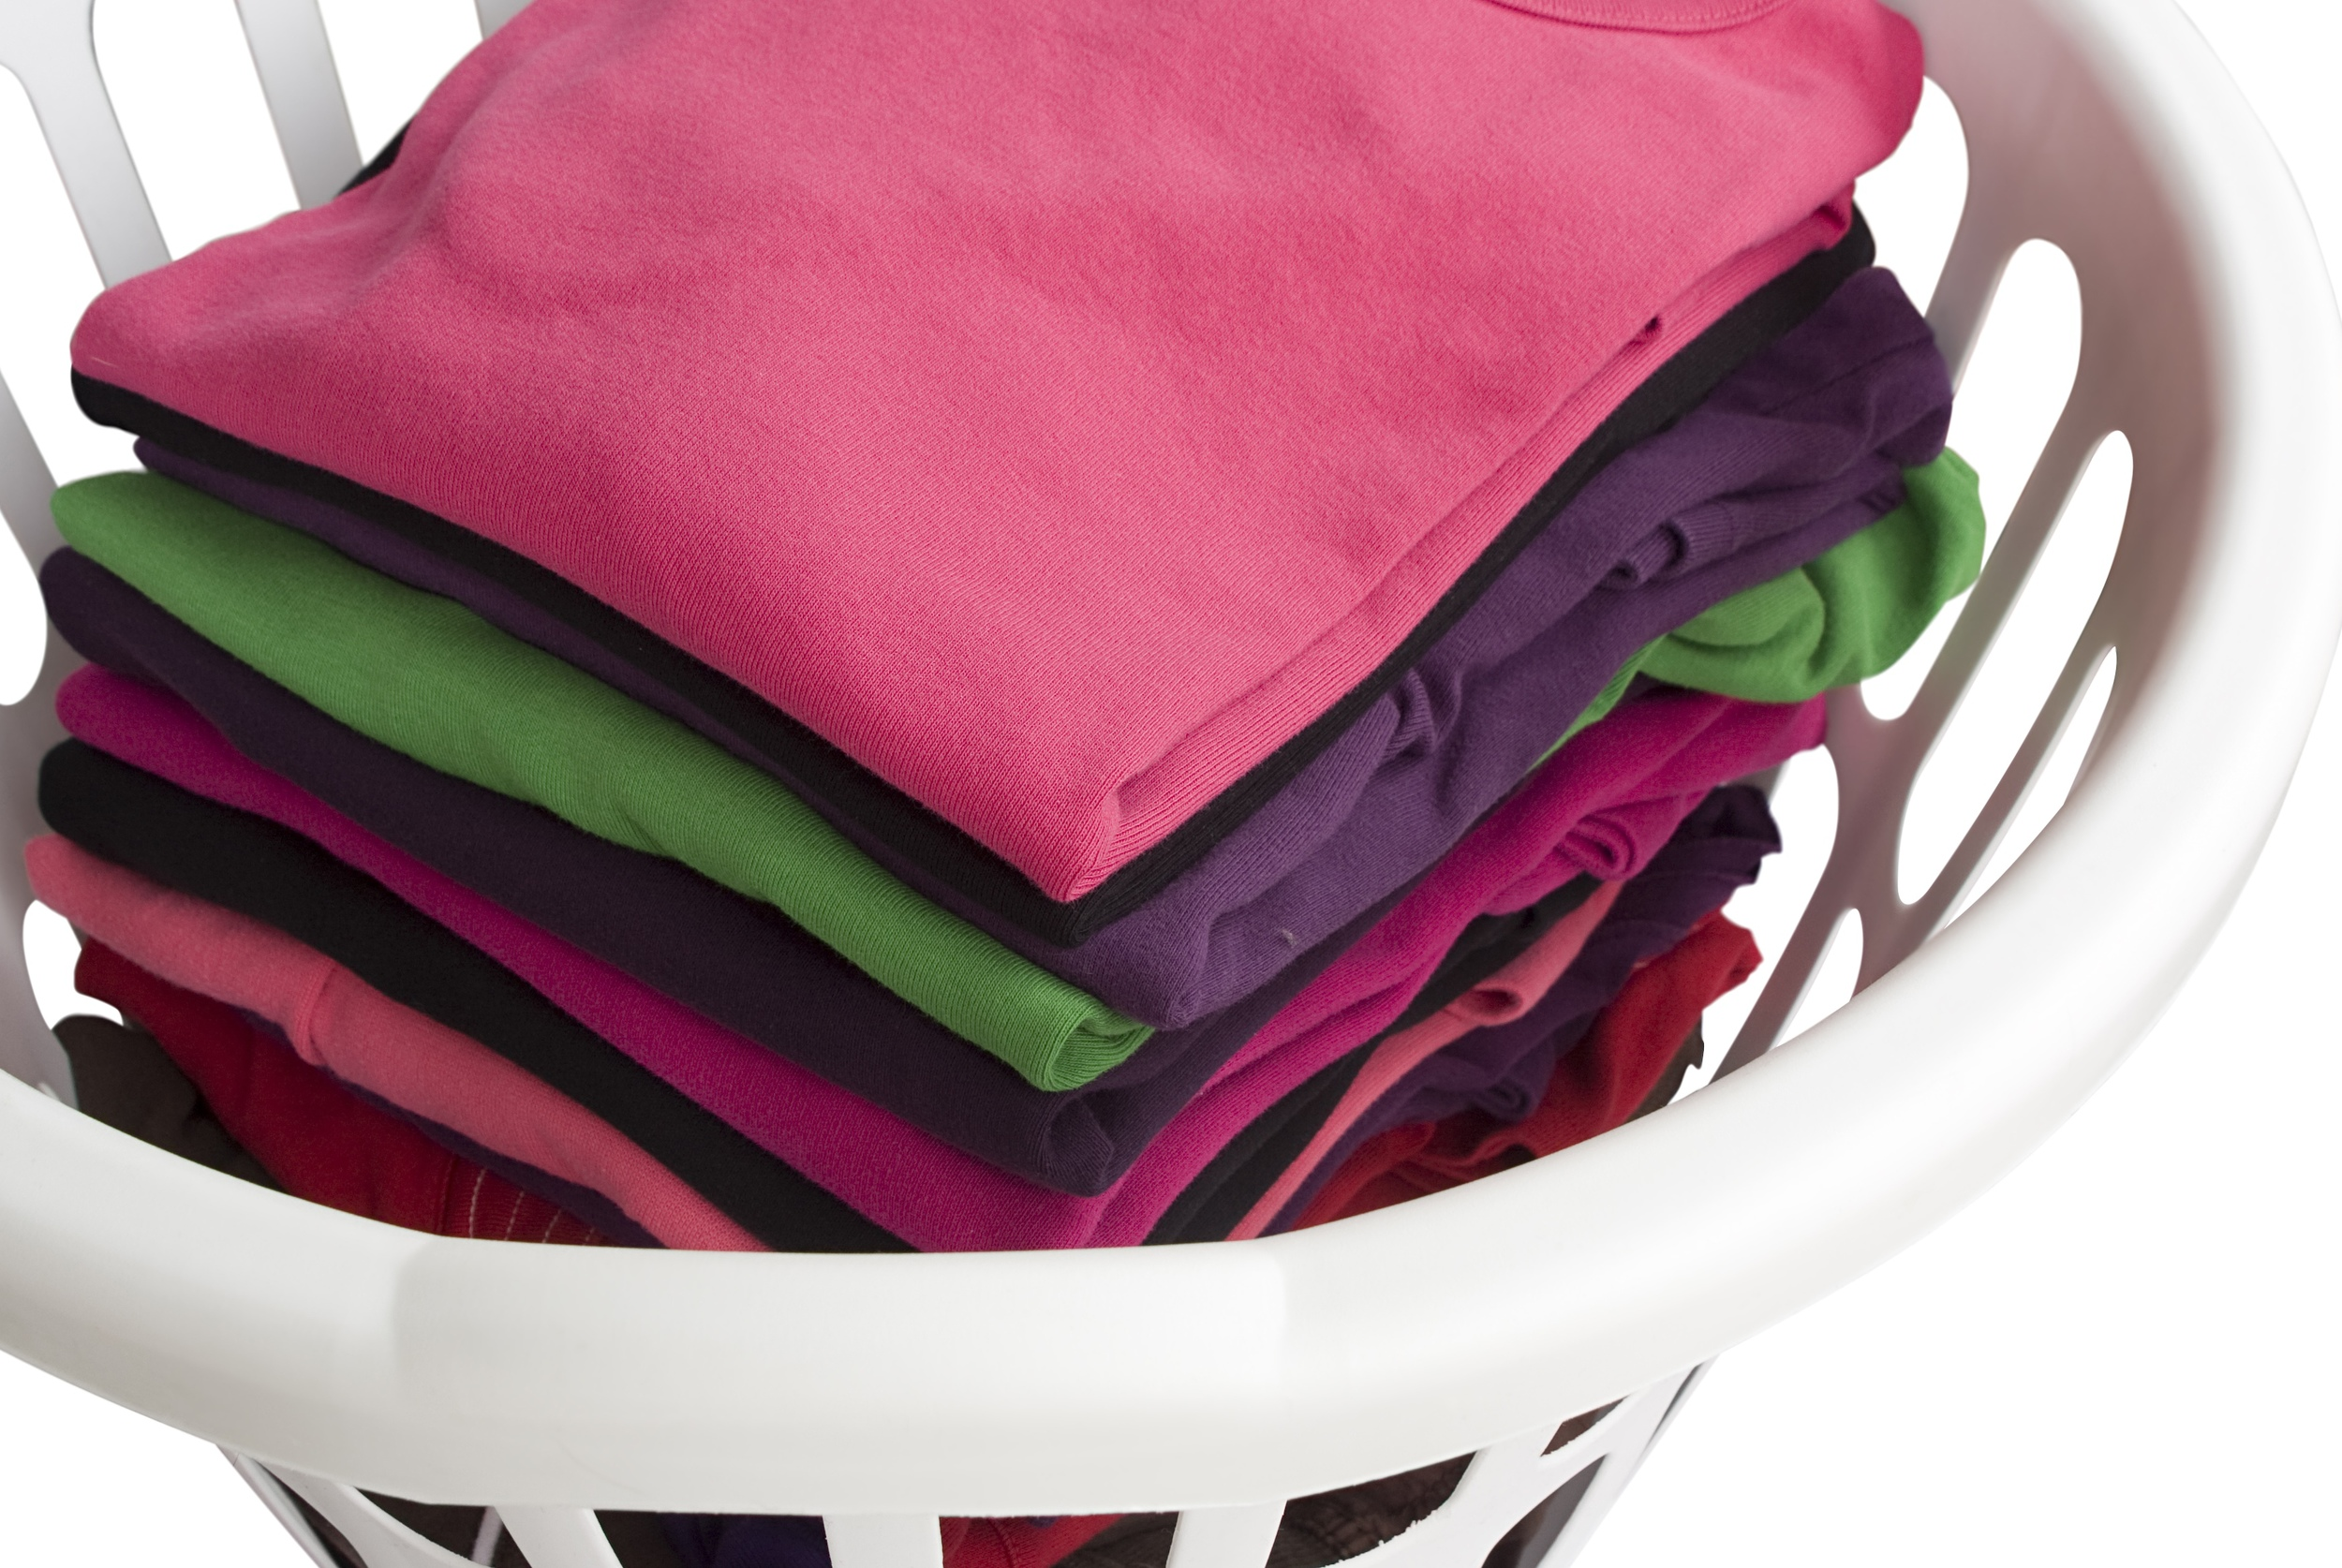 A-colourful-pile-of-laund-011.jpg